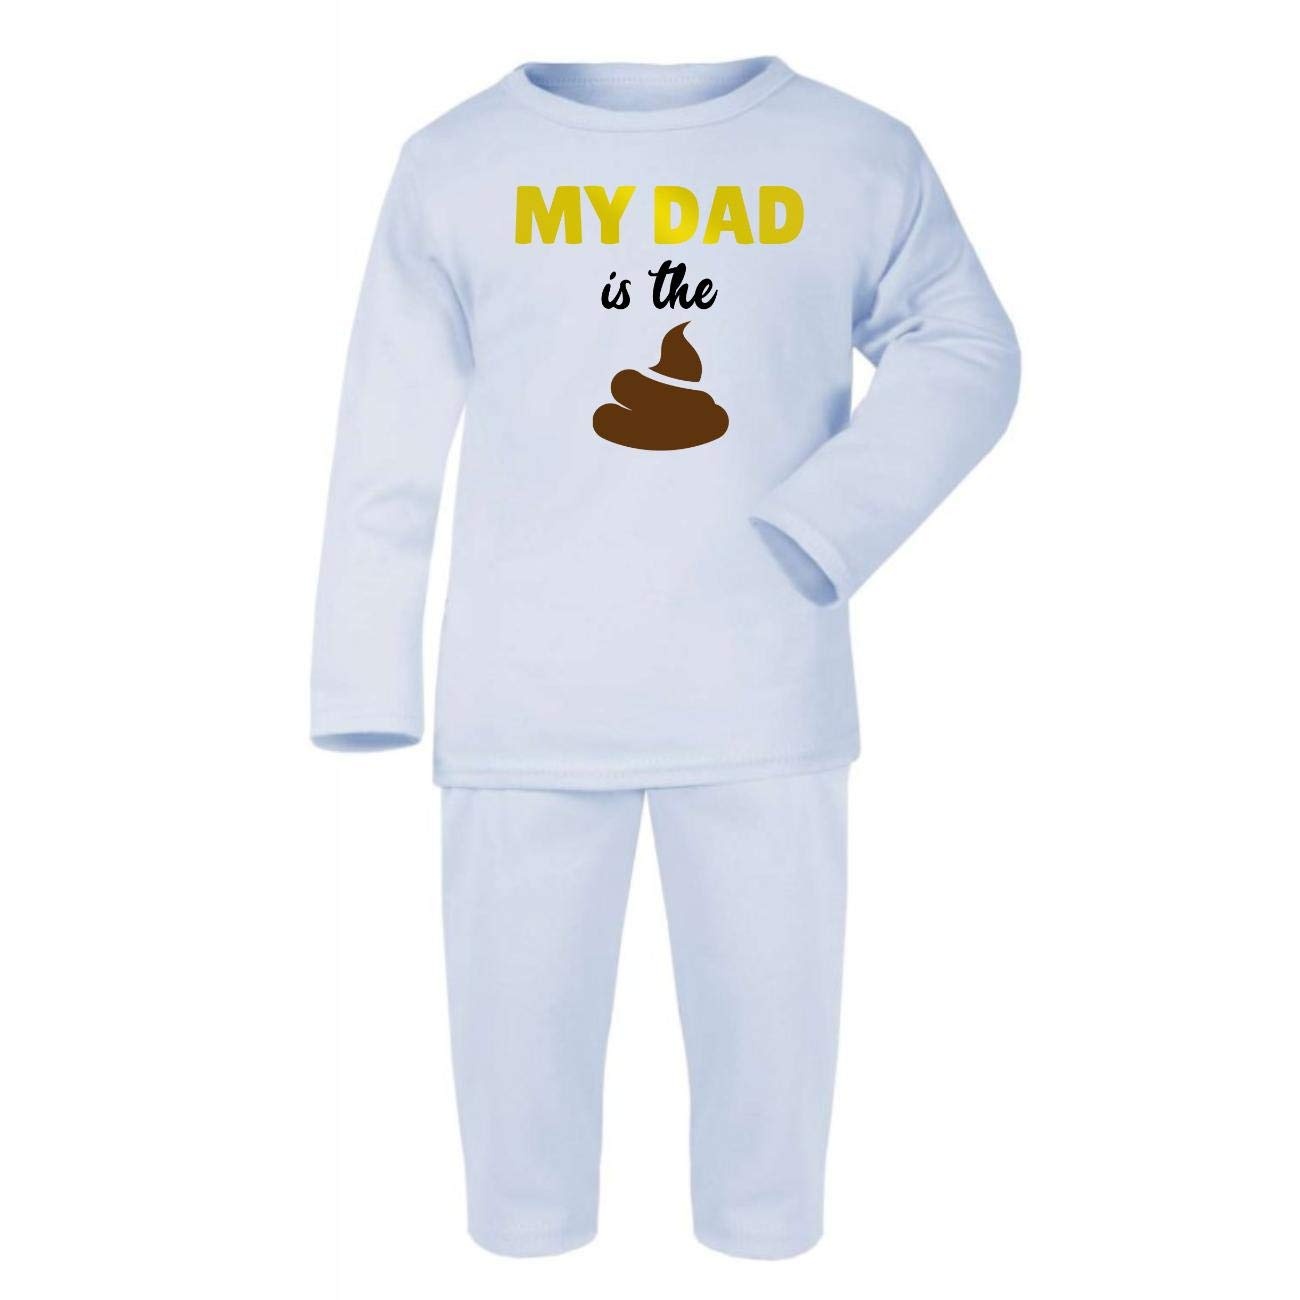 My dad is The Shit Cotton Baby PJ Pajama Set Long Sleeve Pastel Pink Fathers Day 2019 - 3-6 Months Gold Metallic